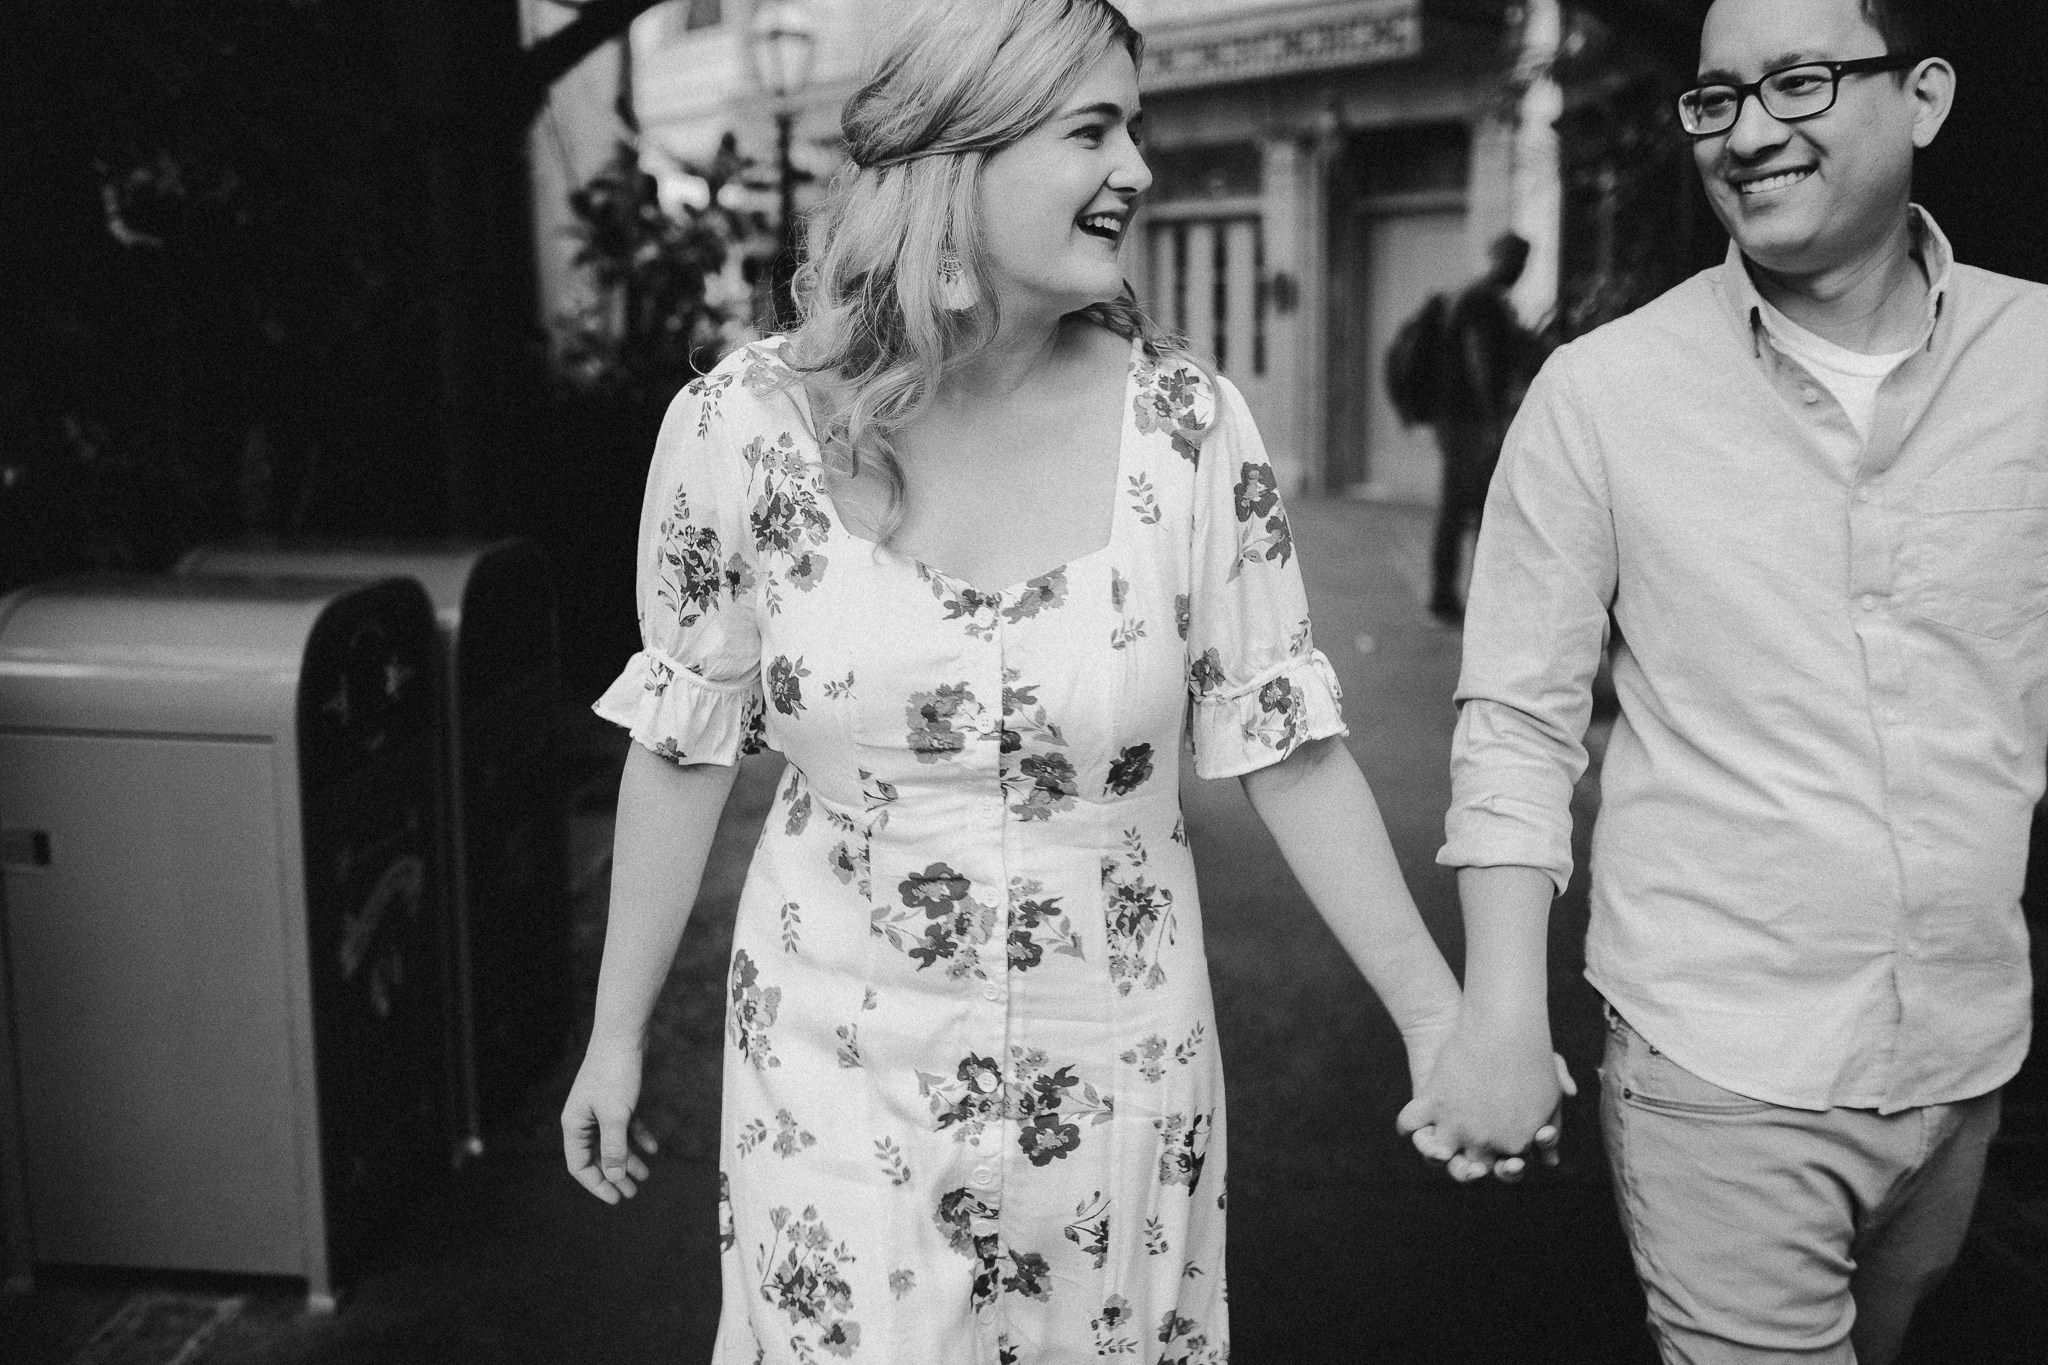 Archer Inspired Photography Disneyland Engagement Wedding Session Southern California Kayla and Kevin Lifestyle Documentary-11.jpg